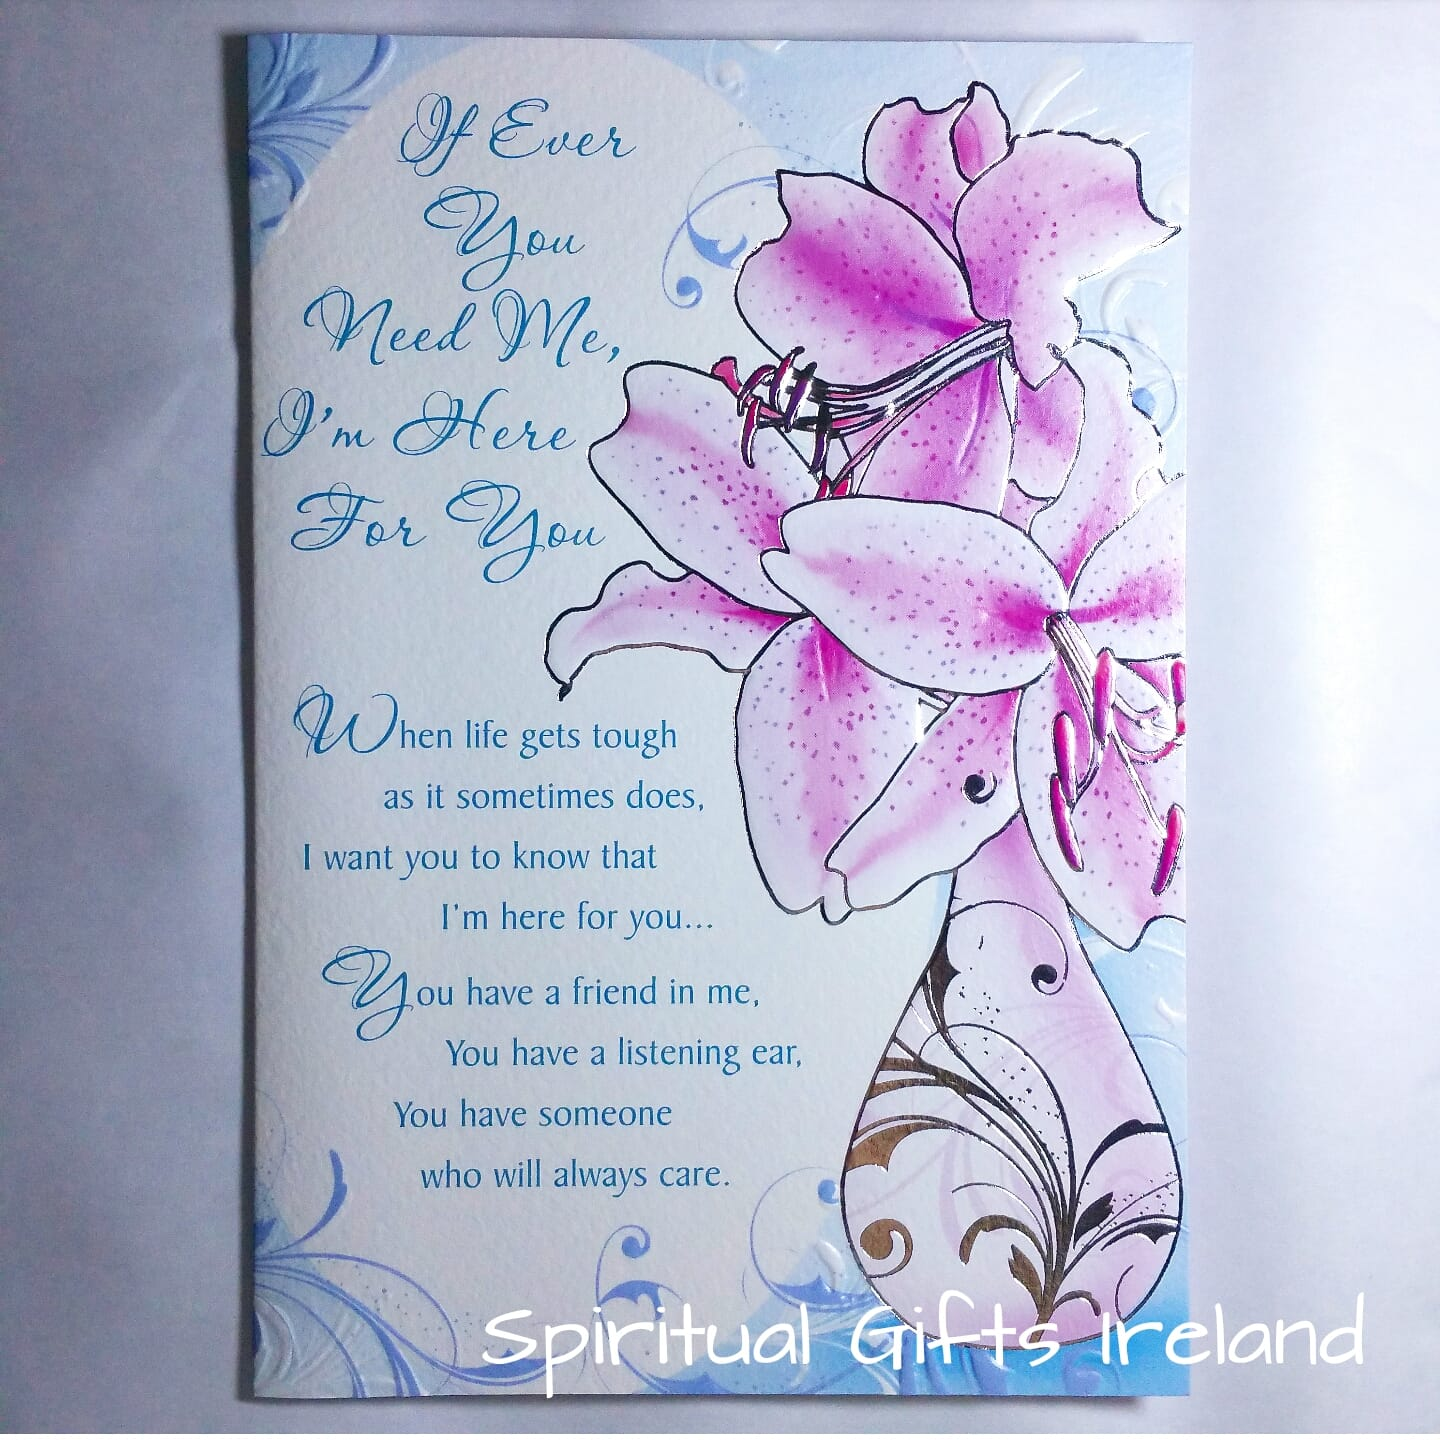 If You Need Me Inspirational Greeting Card Spiritual Gifts Ireland